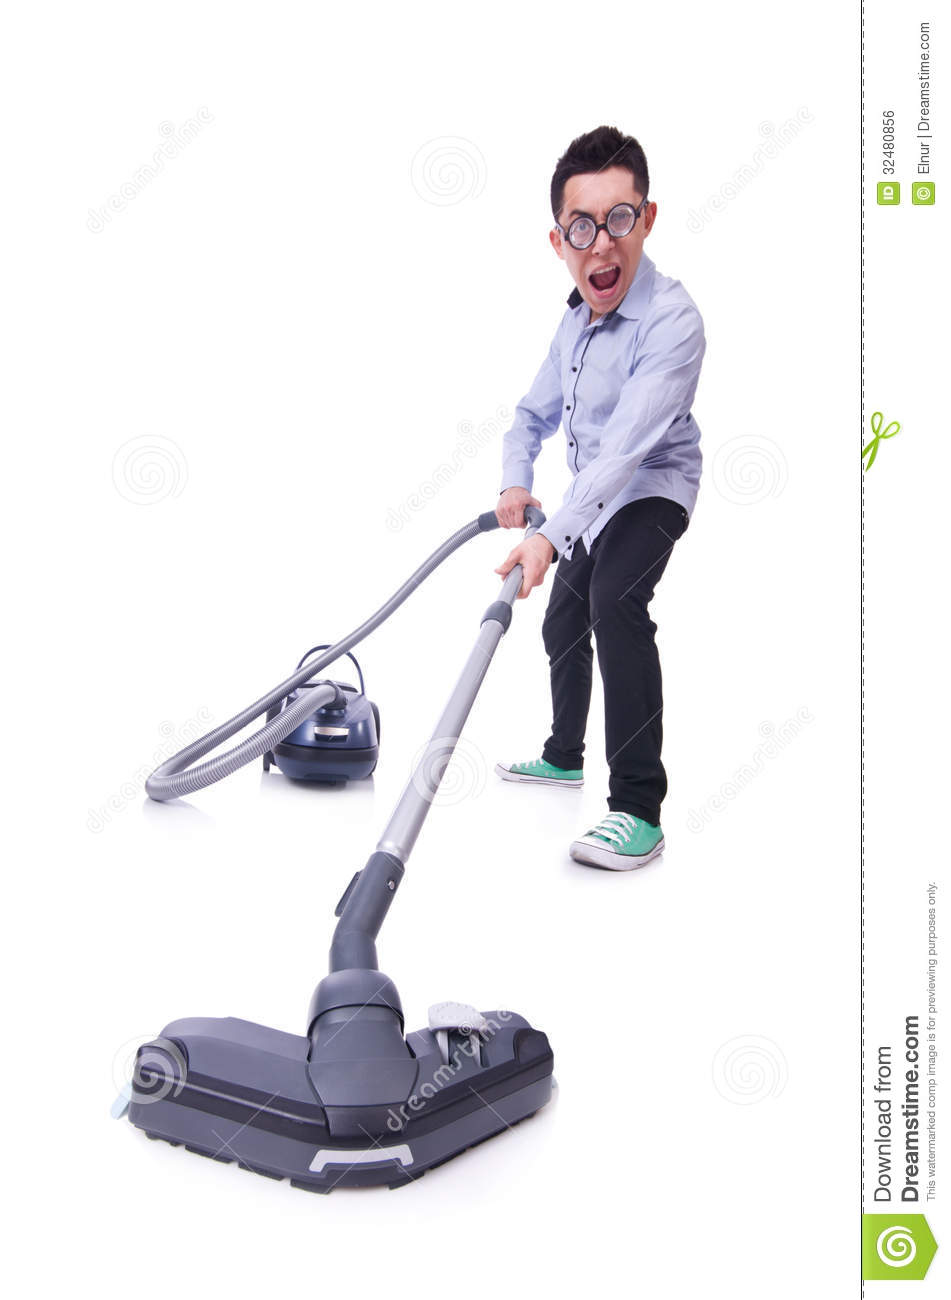 Funny Man With Vacuum Cleaner Royalty Free Stock Image